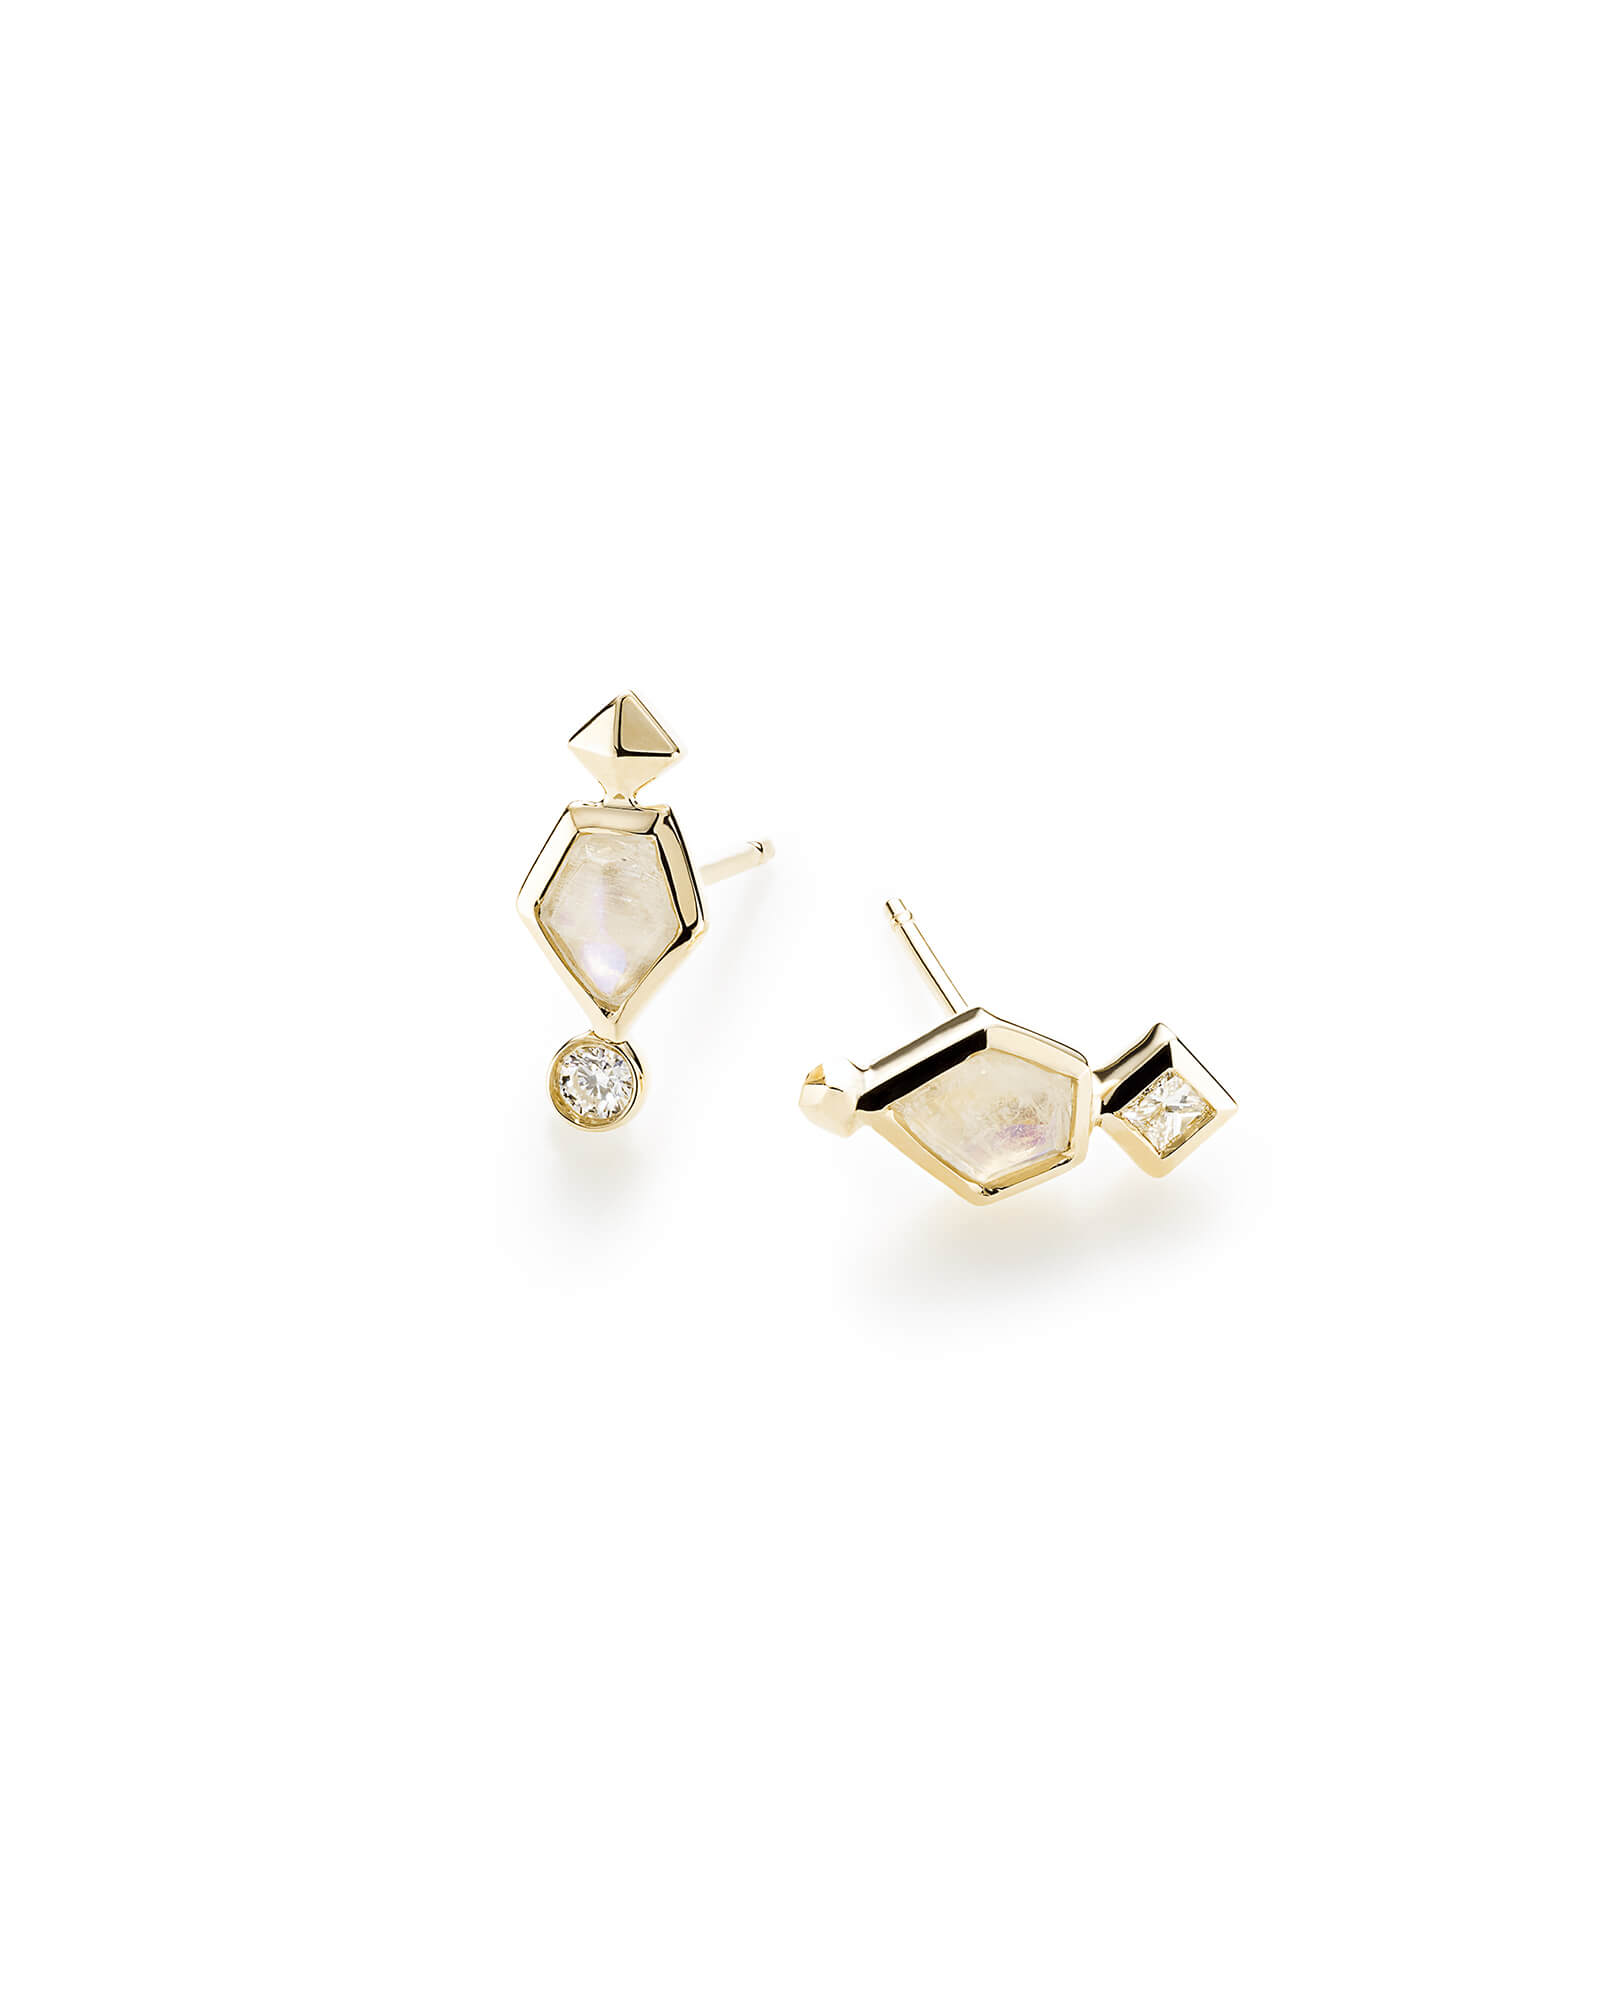 Bonnie Stud Earrings in Rainbow Moonstone and 14k Yellow Gold